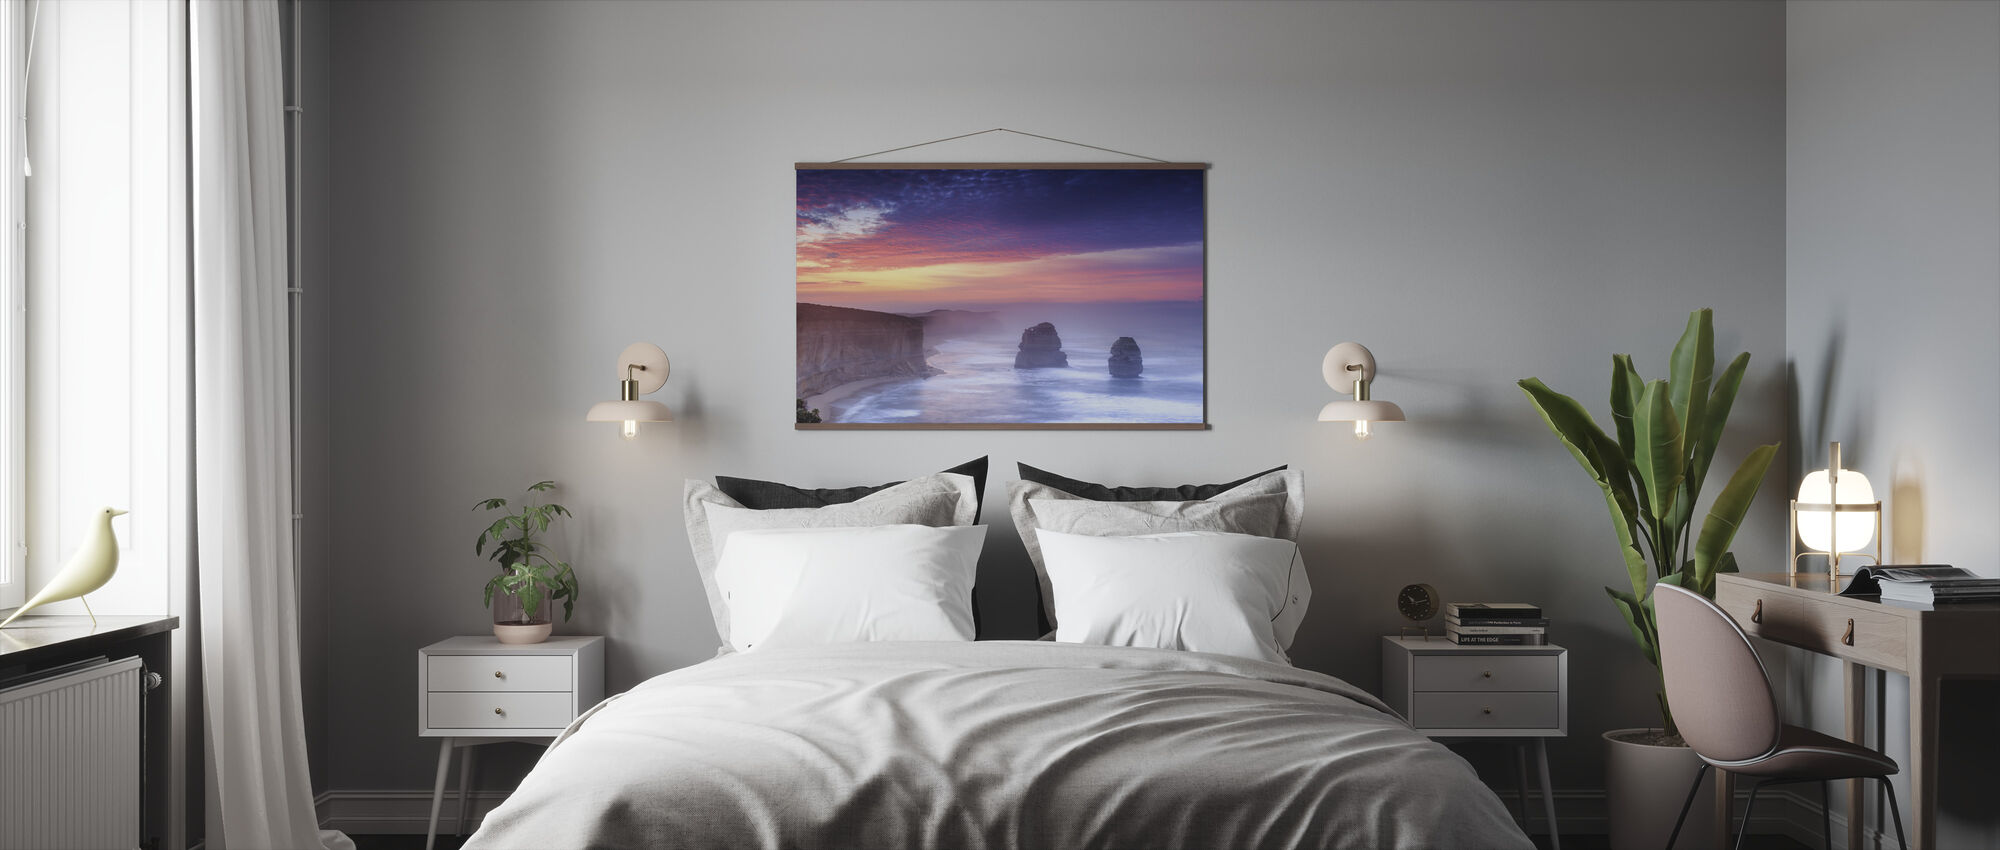 Australian Shoreline - Poster - Bedroom